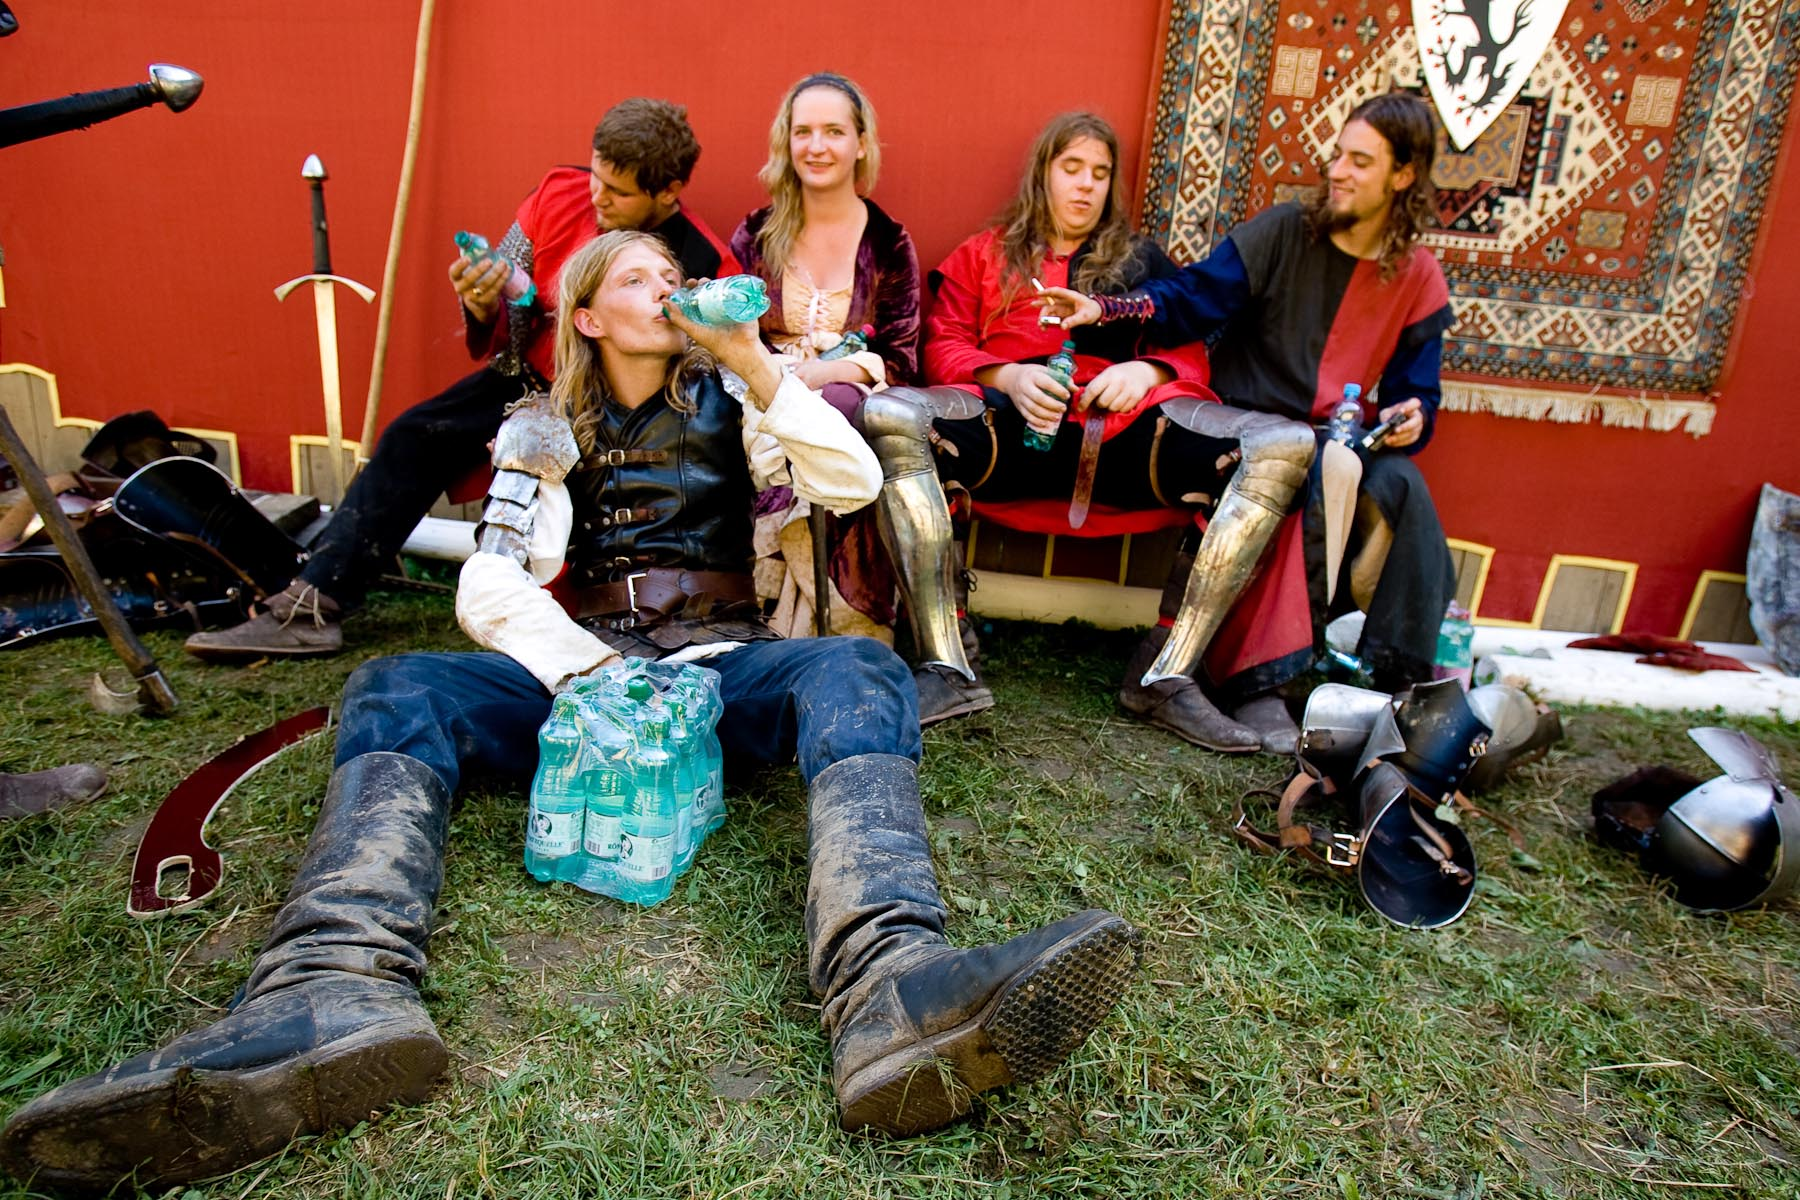 Most Medieval events take place during summer when it is very hot, especially under the outfits. After the show in Predjama that takes place in July the knights are exhausted.